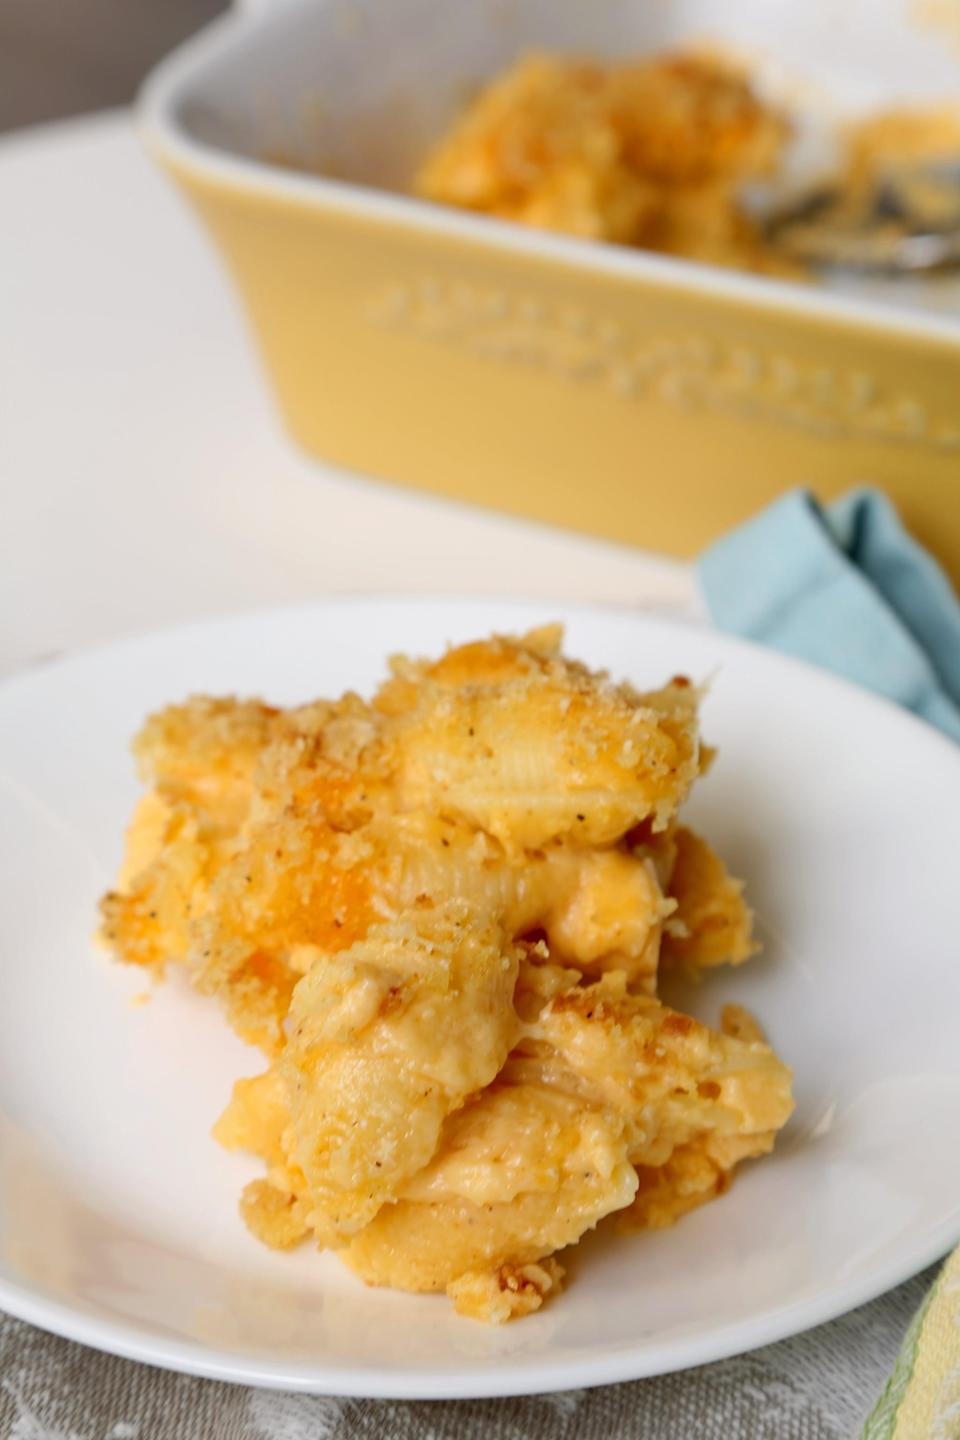 """<p>If incredibly rich macaroni and cheese with a crunchy breadcrumb topping is your kind of mac and cheese, this is the only recipe you'll need for the rest of your life. Chrissy's garlicky breadcrumbs take this shells mac to the next level, and you'll want to put them on everything.</p> <p><strong>Get the recipe:</strong> <a href=""""https://www.popsugar.com/food/John-Legend-Chrissy-Teigen-Mac-Cheese-Recipes-41077588"""" class=""""link rapid-noclick-resp"""" rel=""""nofollow noopener"""" target=""""_blank"""" data-ylk=""""slk:Chrissy Teigen's mac and cheese"""">Chrissy Teigen's mac and cheese</a></p>"""